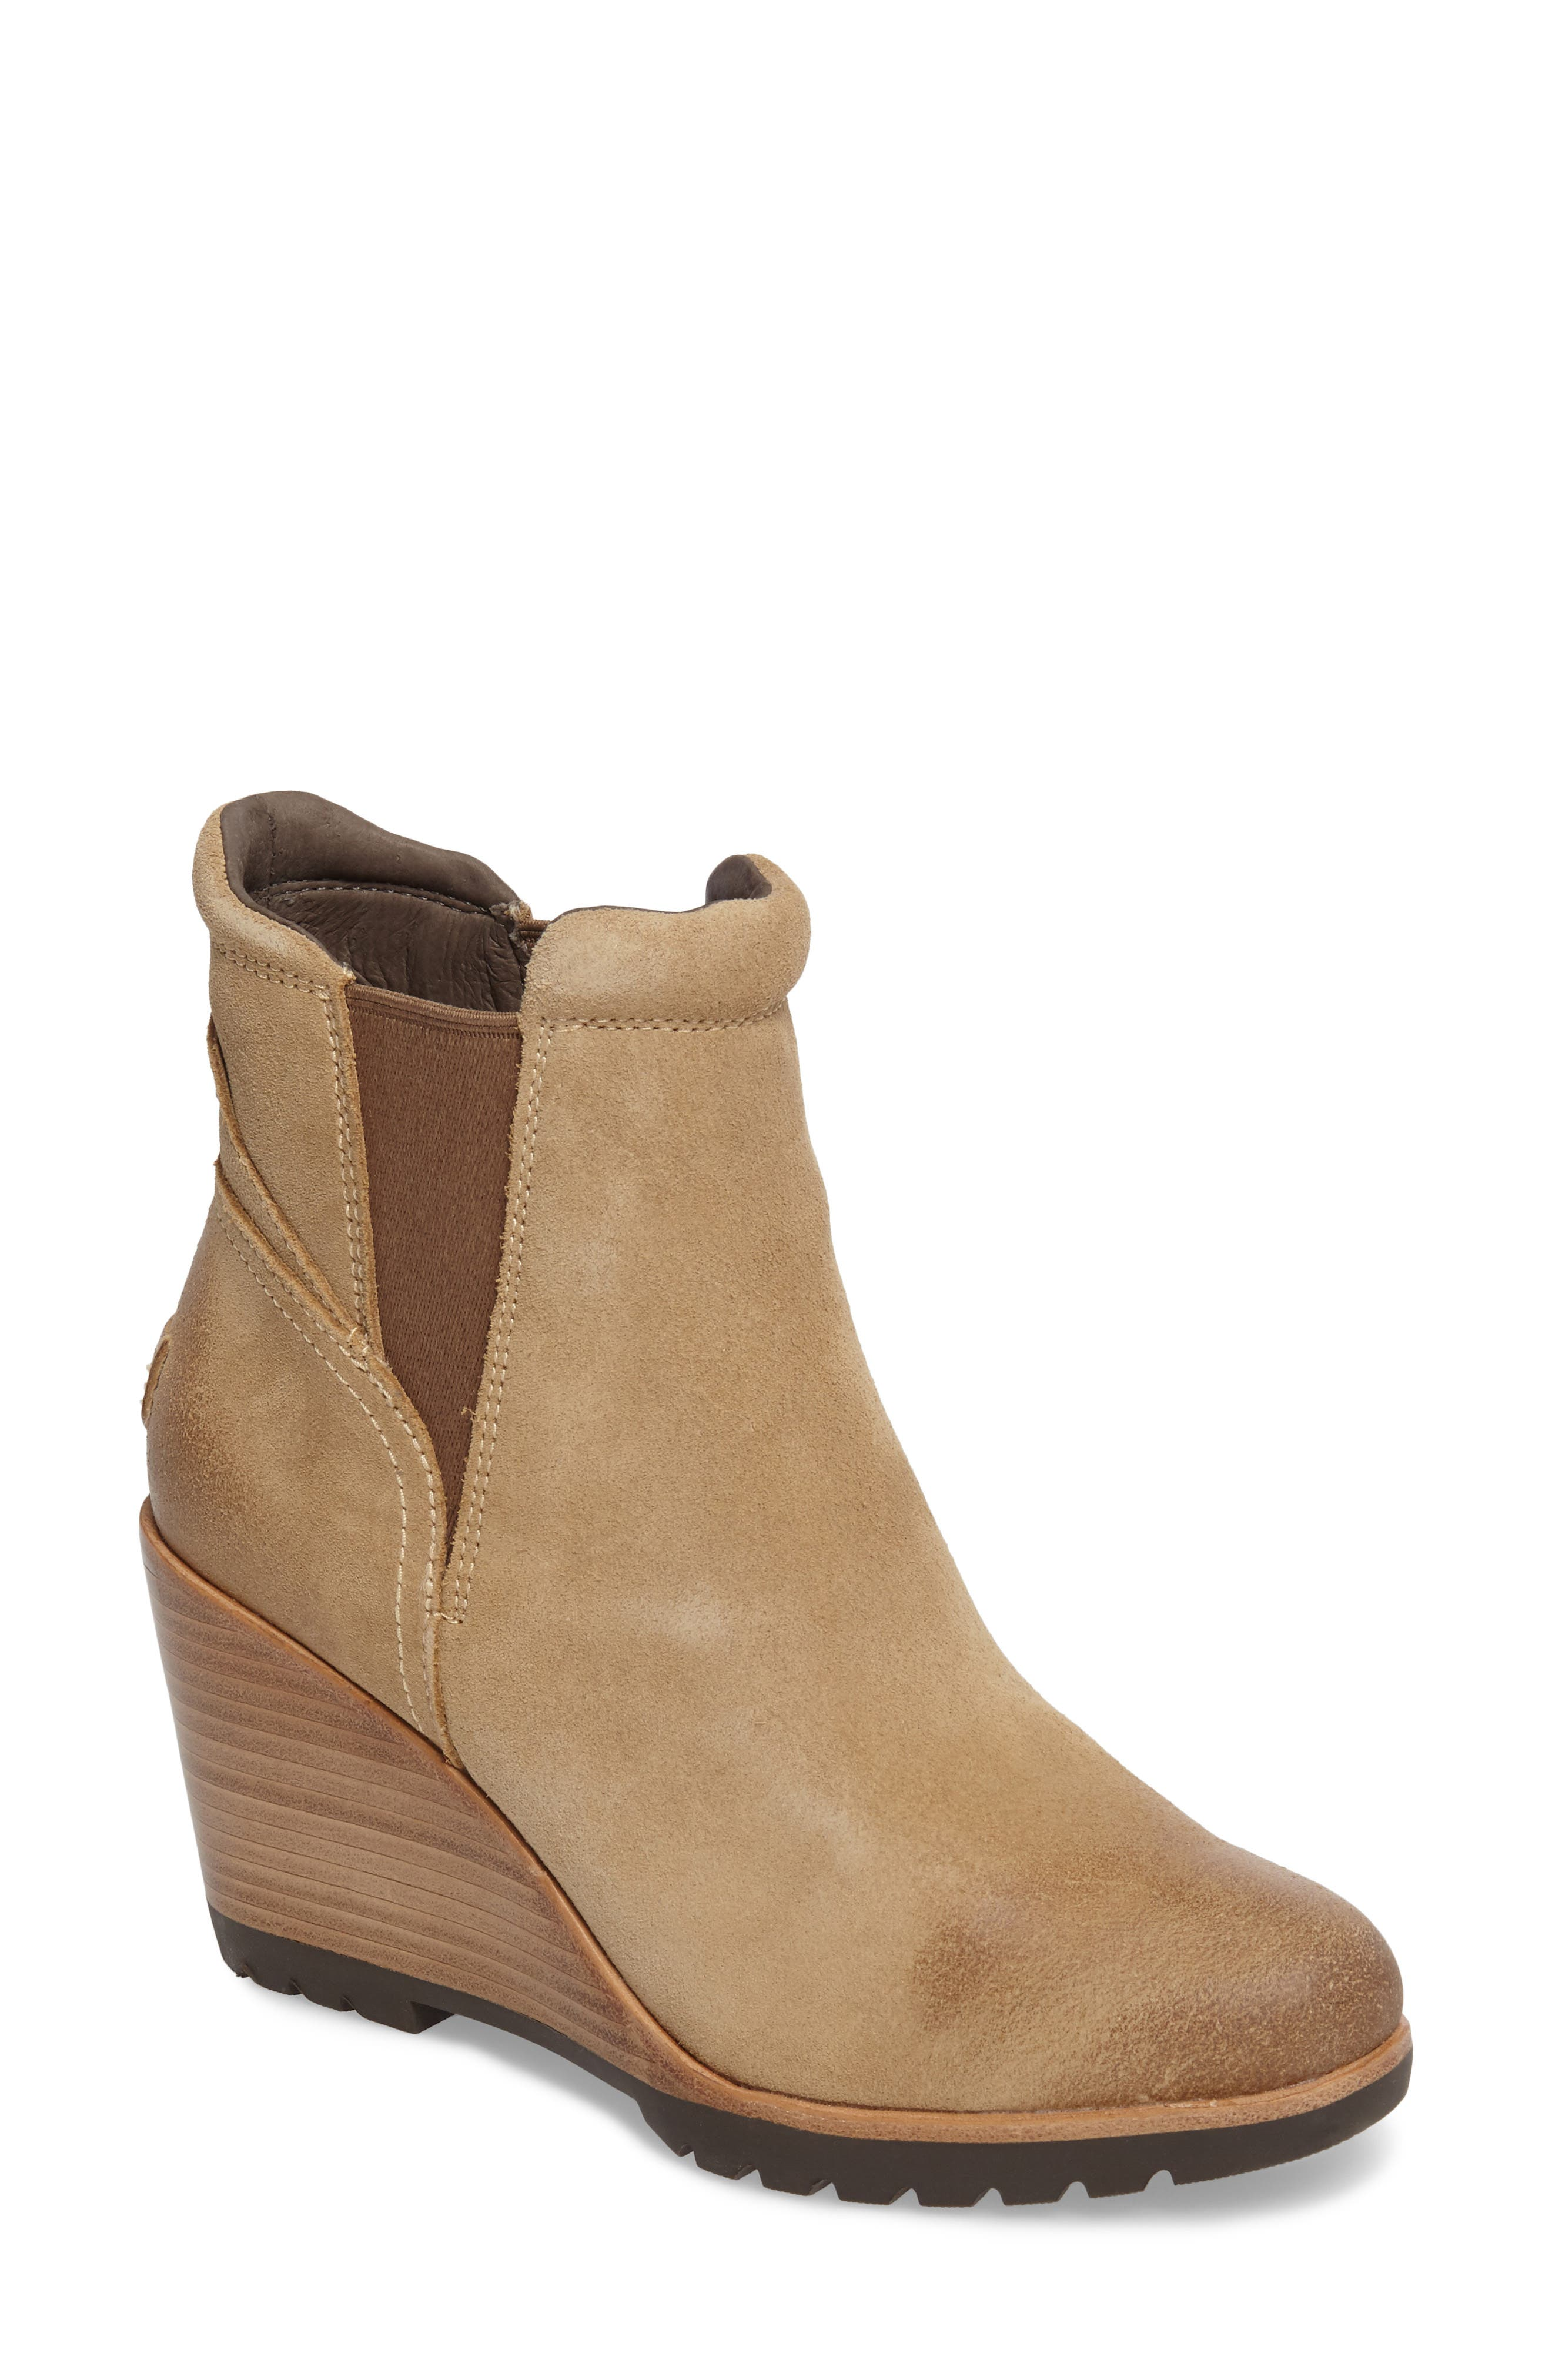 After Hours Chelsea Boot,                             Main thumbnail 1, color,                             Beach